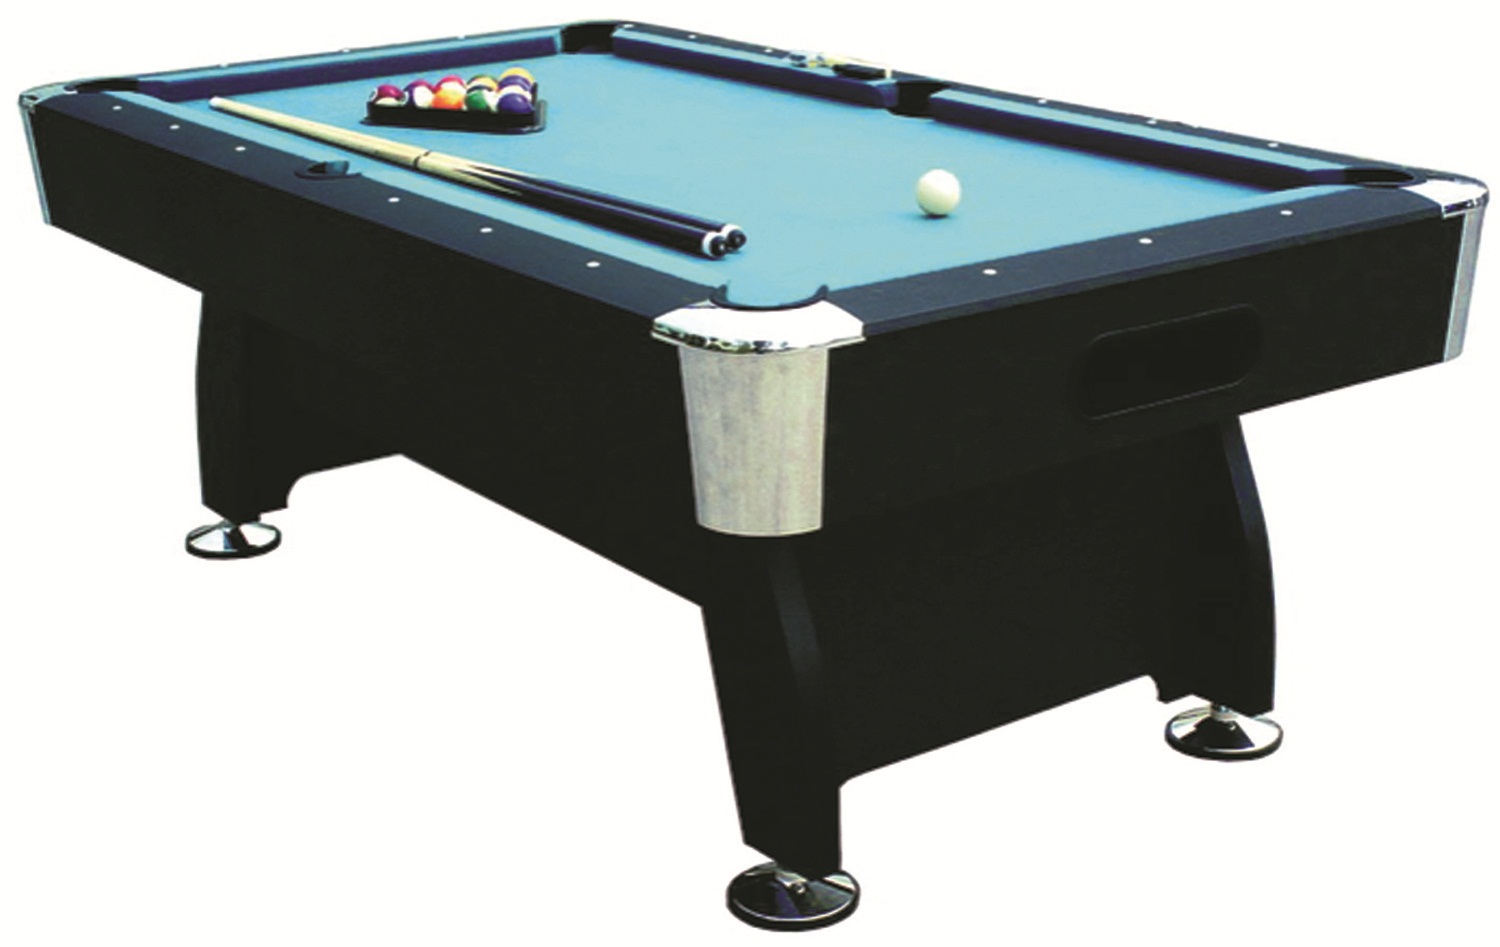 Table tennis table manufacturers tt table suppliers india for Table 52 prices